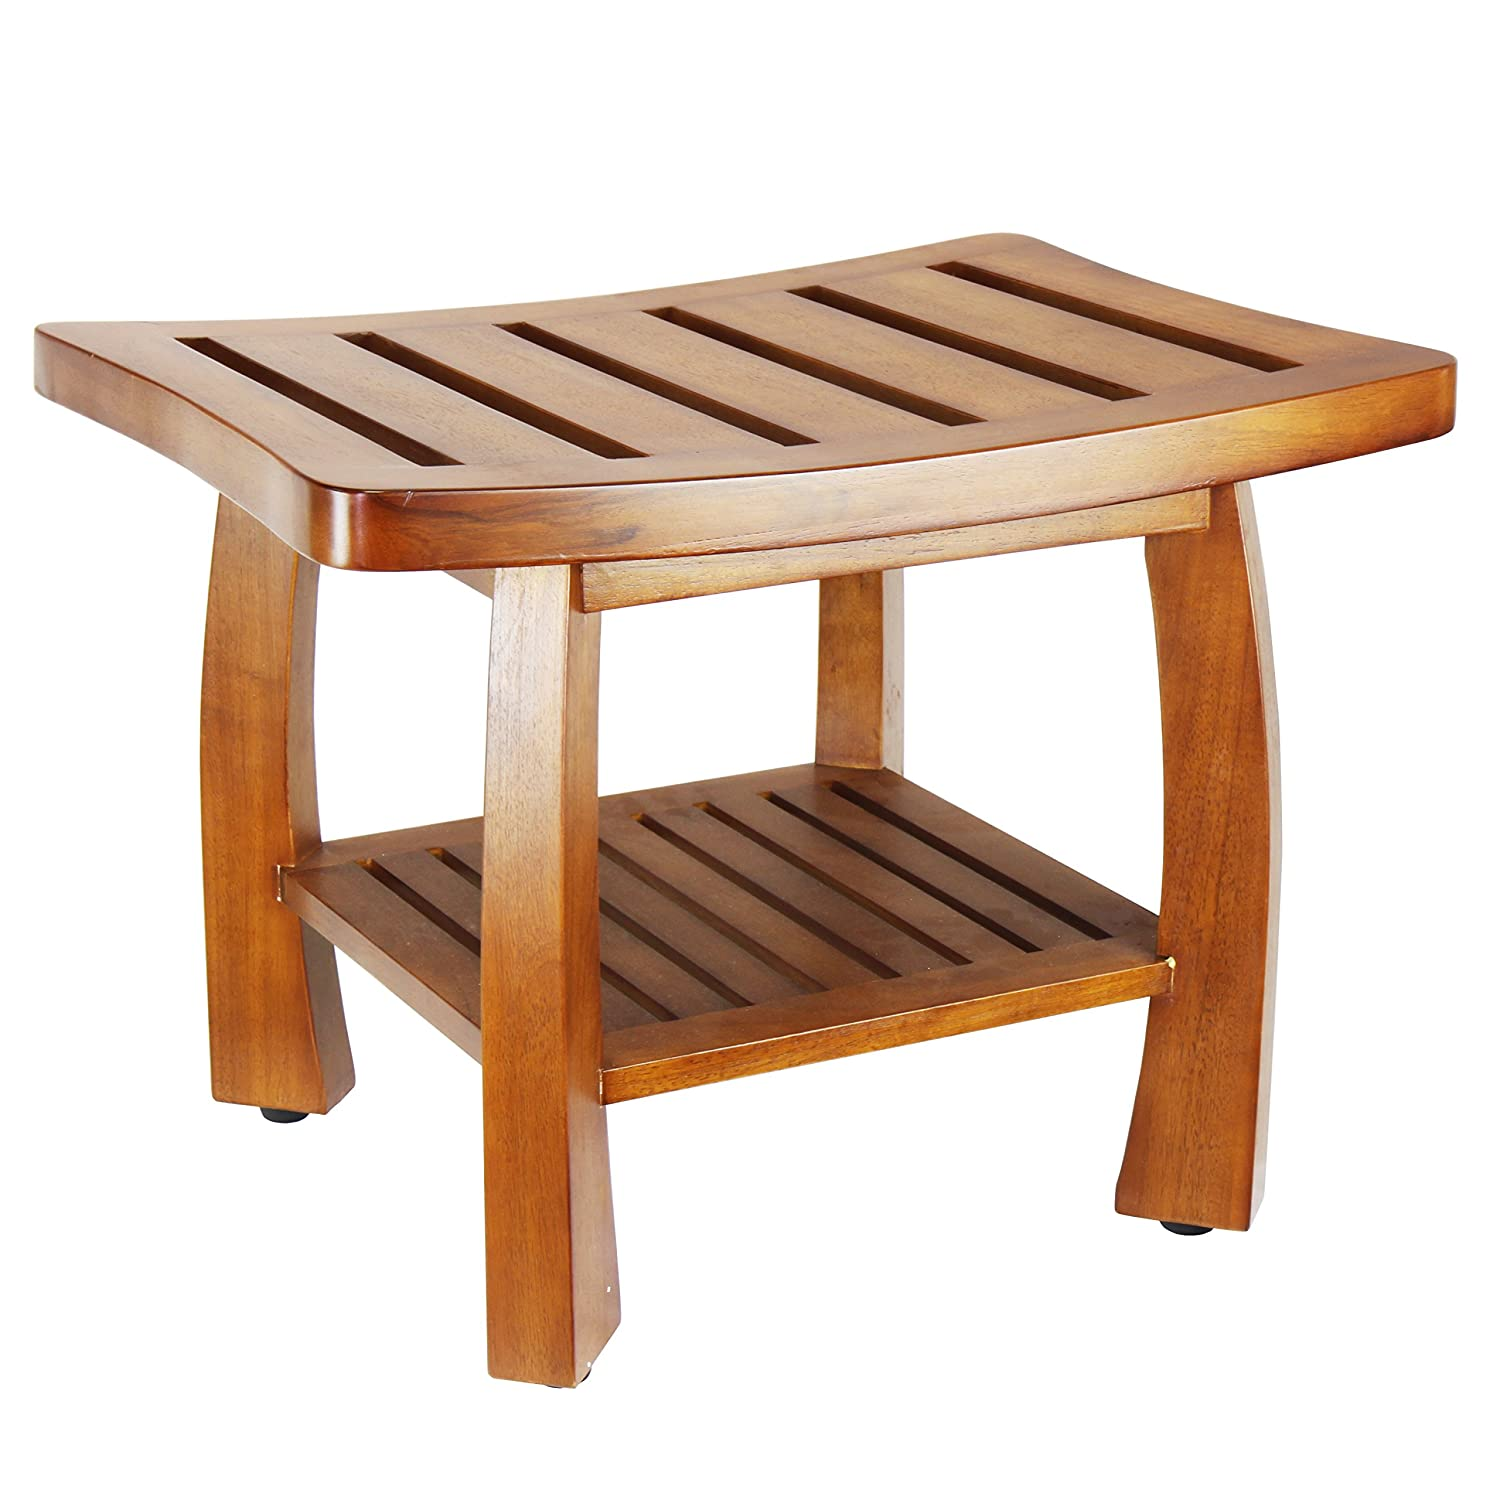 Floor Stool Bathroom Solid Teak Wood Portable Spa Bench Furniture Shower Seat Ebay